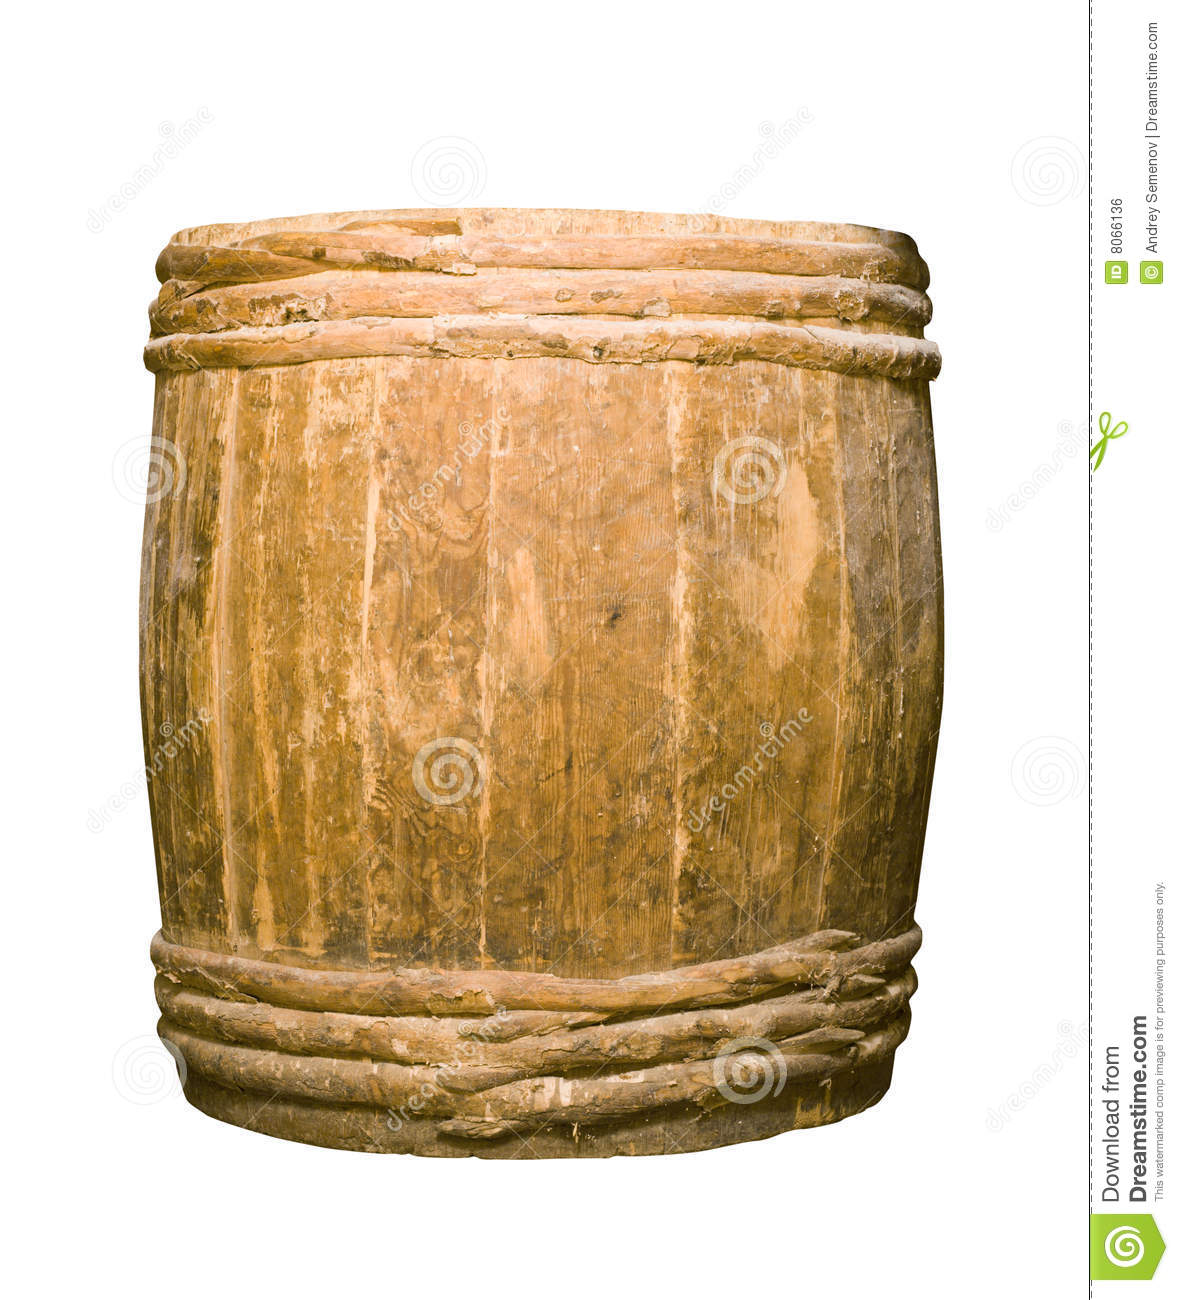 Old Completely Wooden Barrel Royalty Free Stock Image - Image: 8066136: dreamstime.com/royalty-free-stock-image-old-completely-wooden...